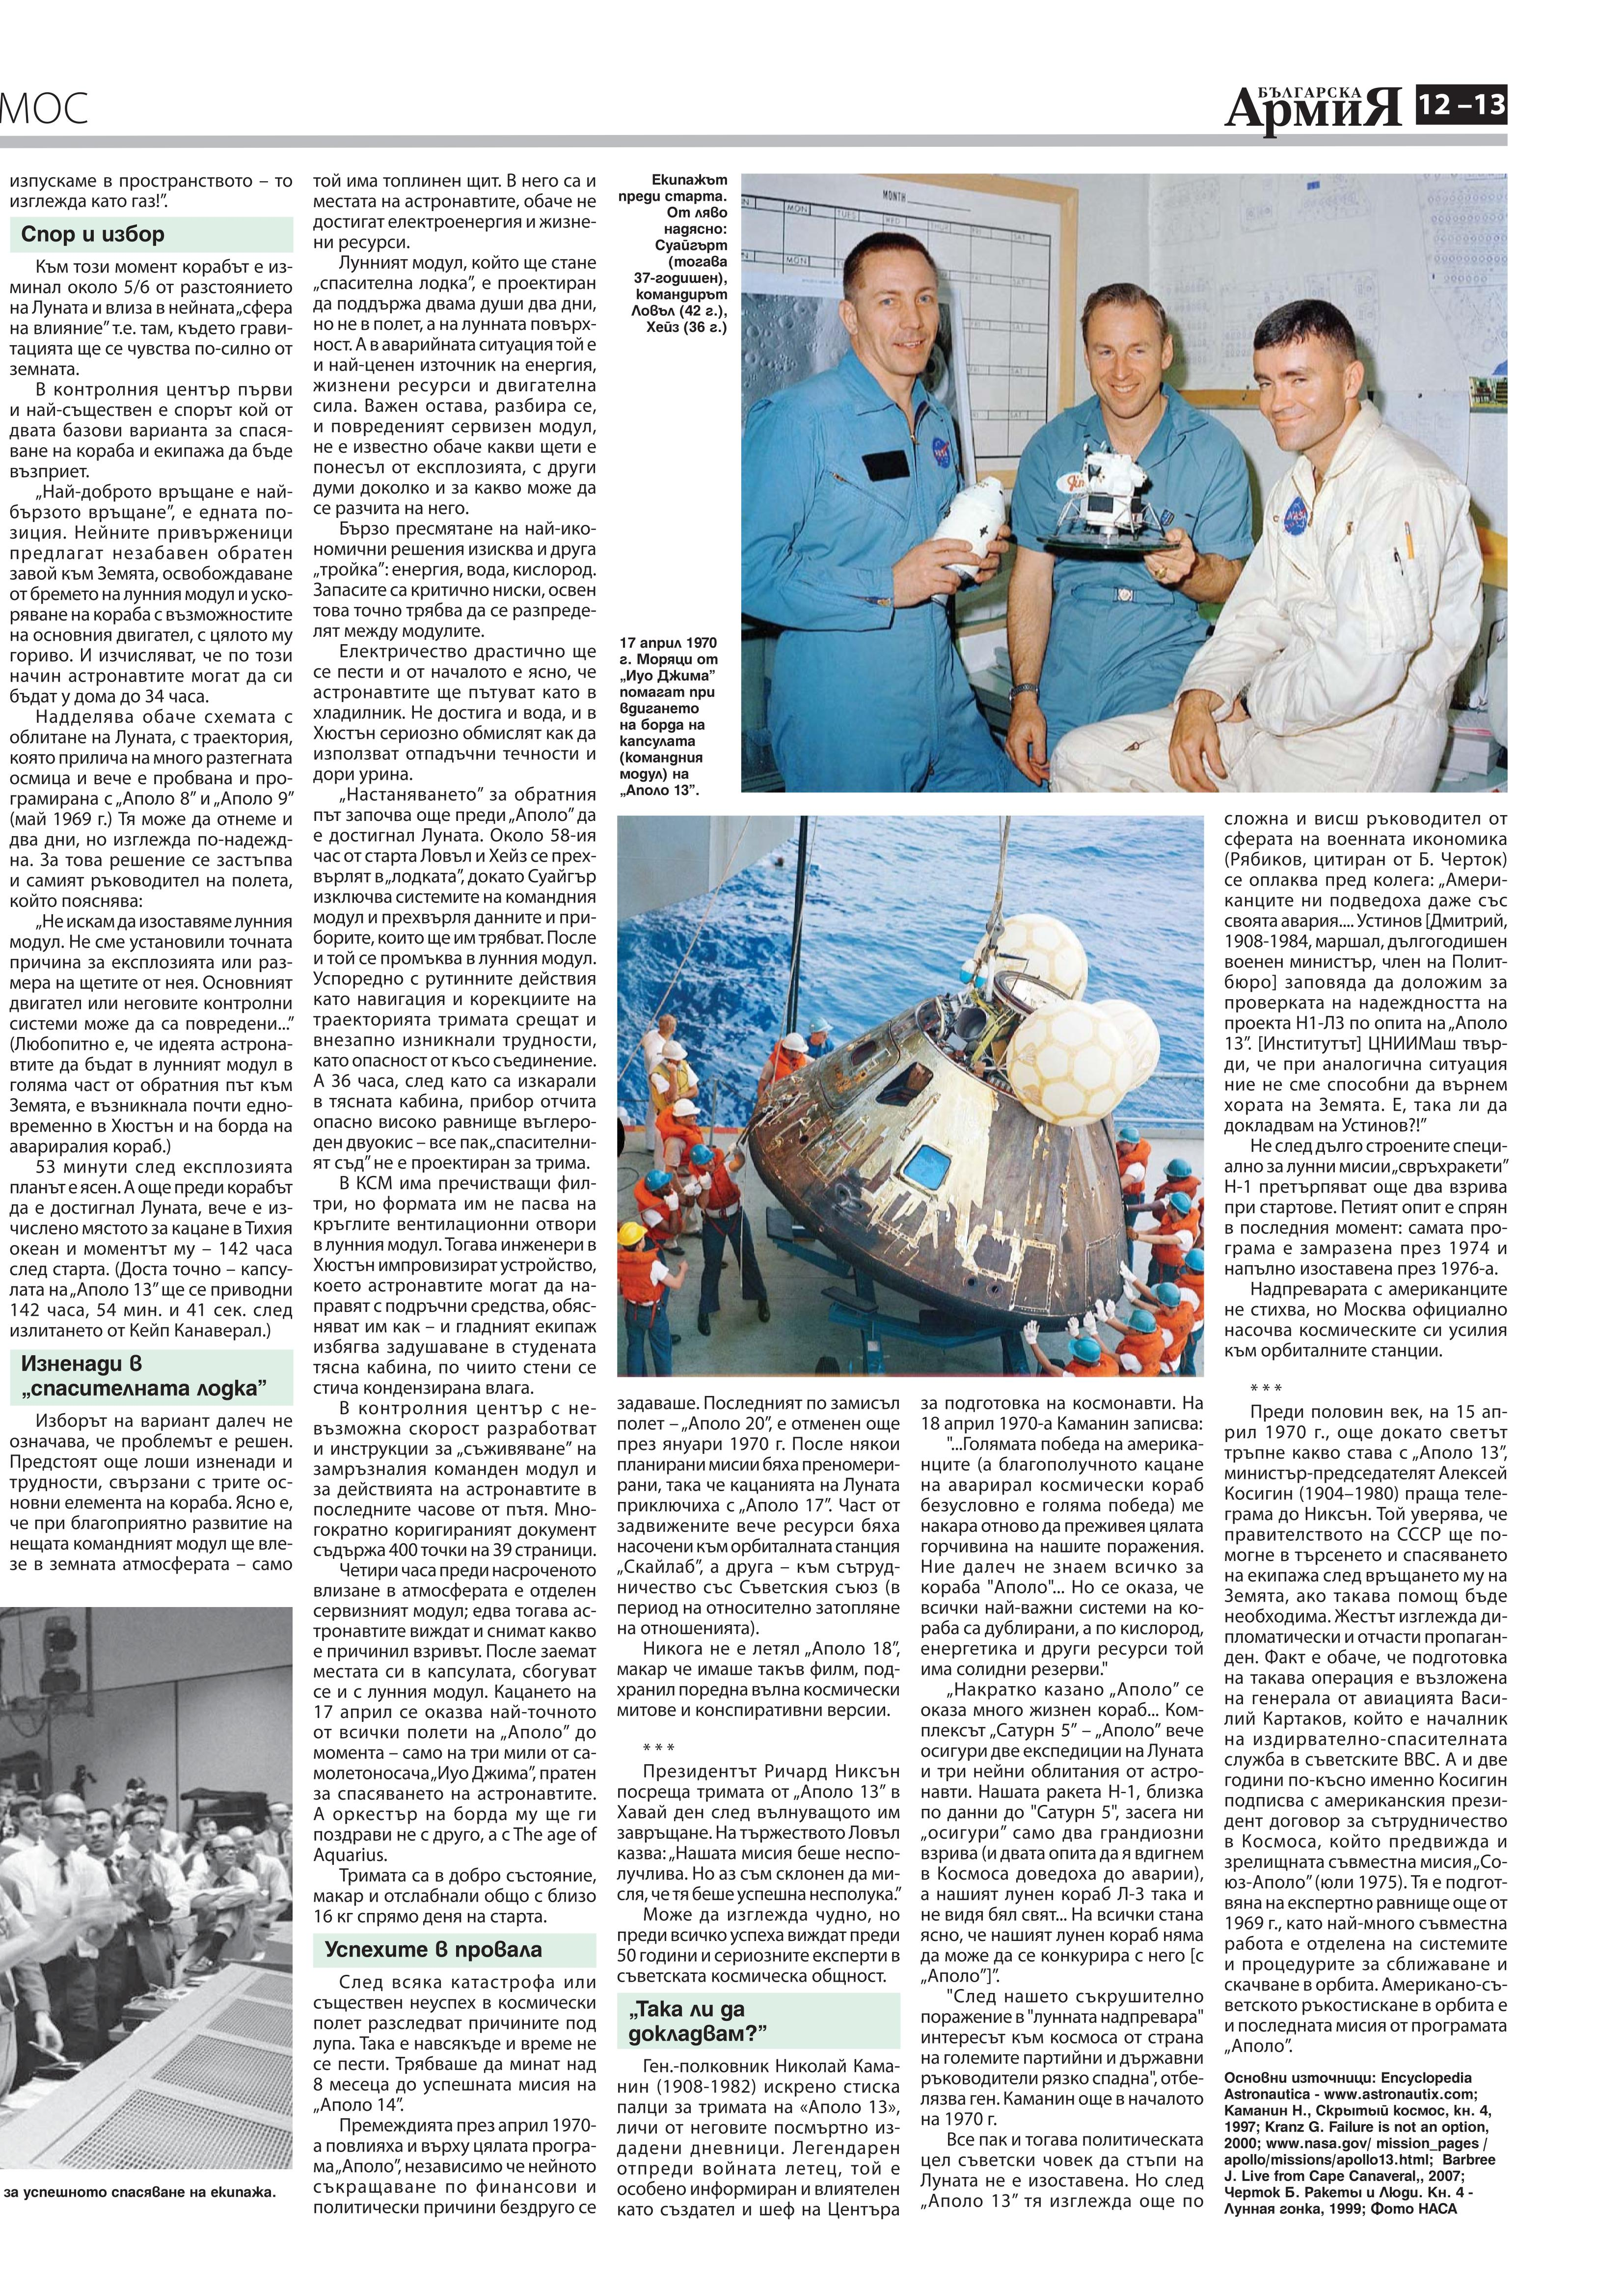 https://www.armymedia.bg/wp-content/uploads/2015/06/13.page1_-134.jpg